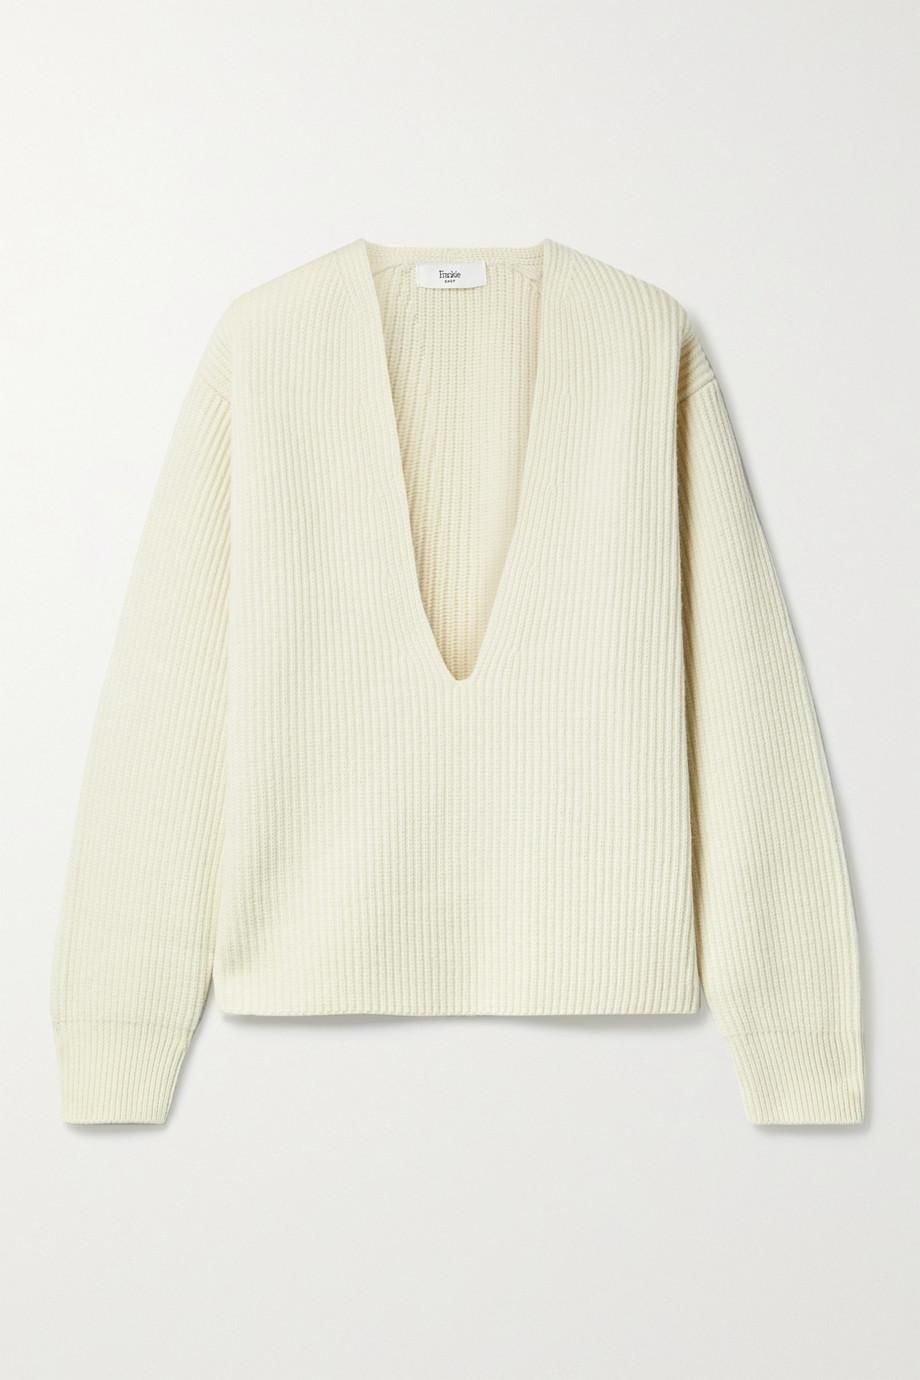 the frankie shop ribbed wool sweater